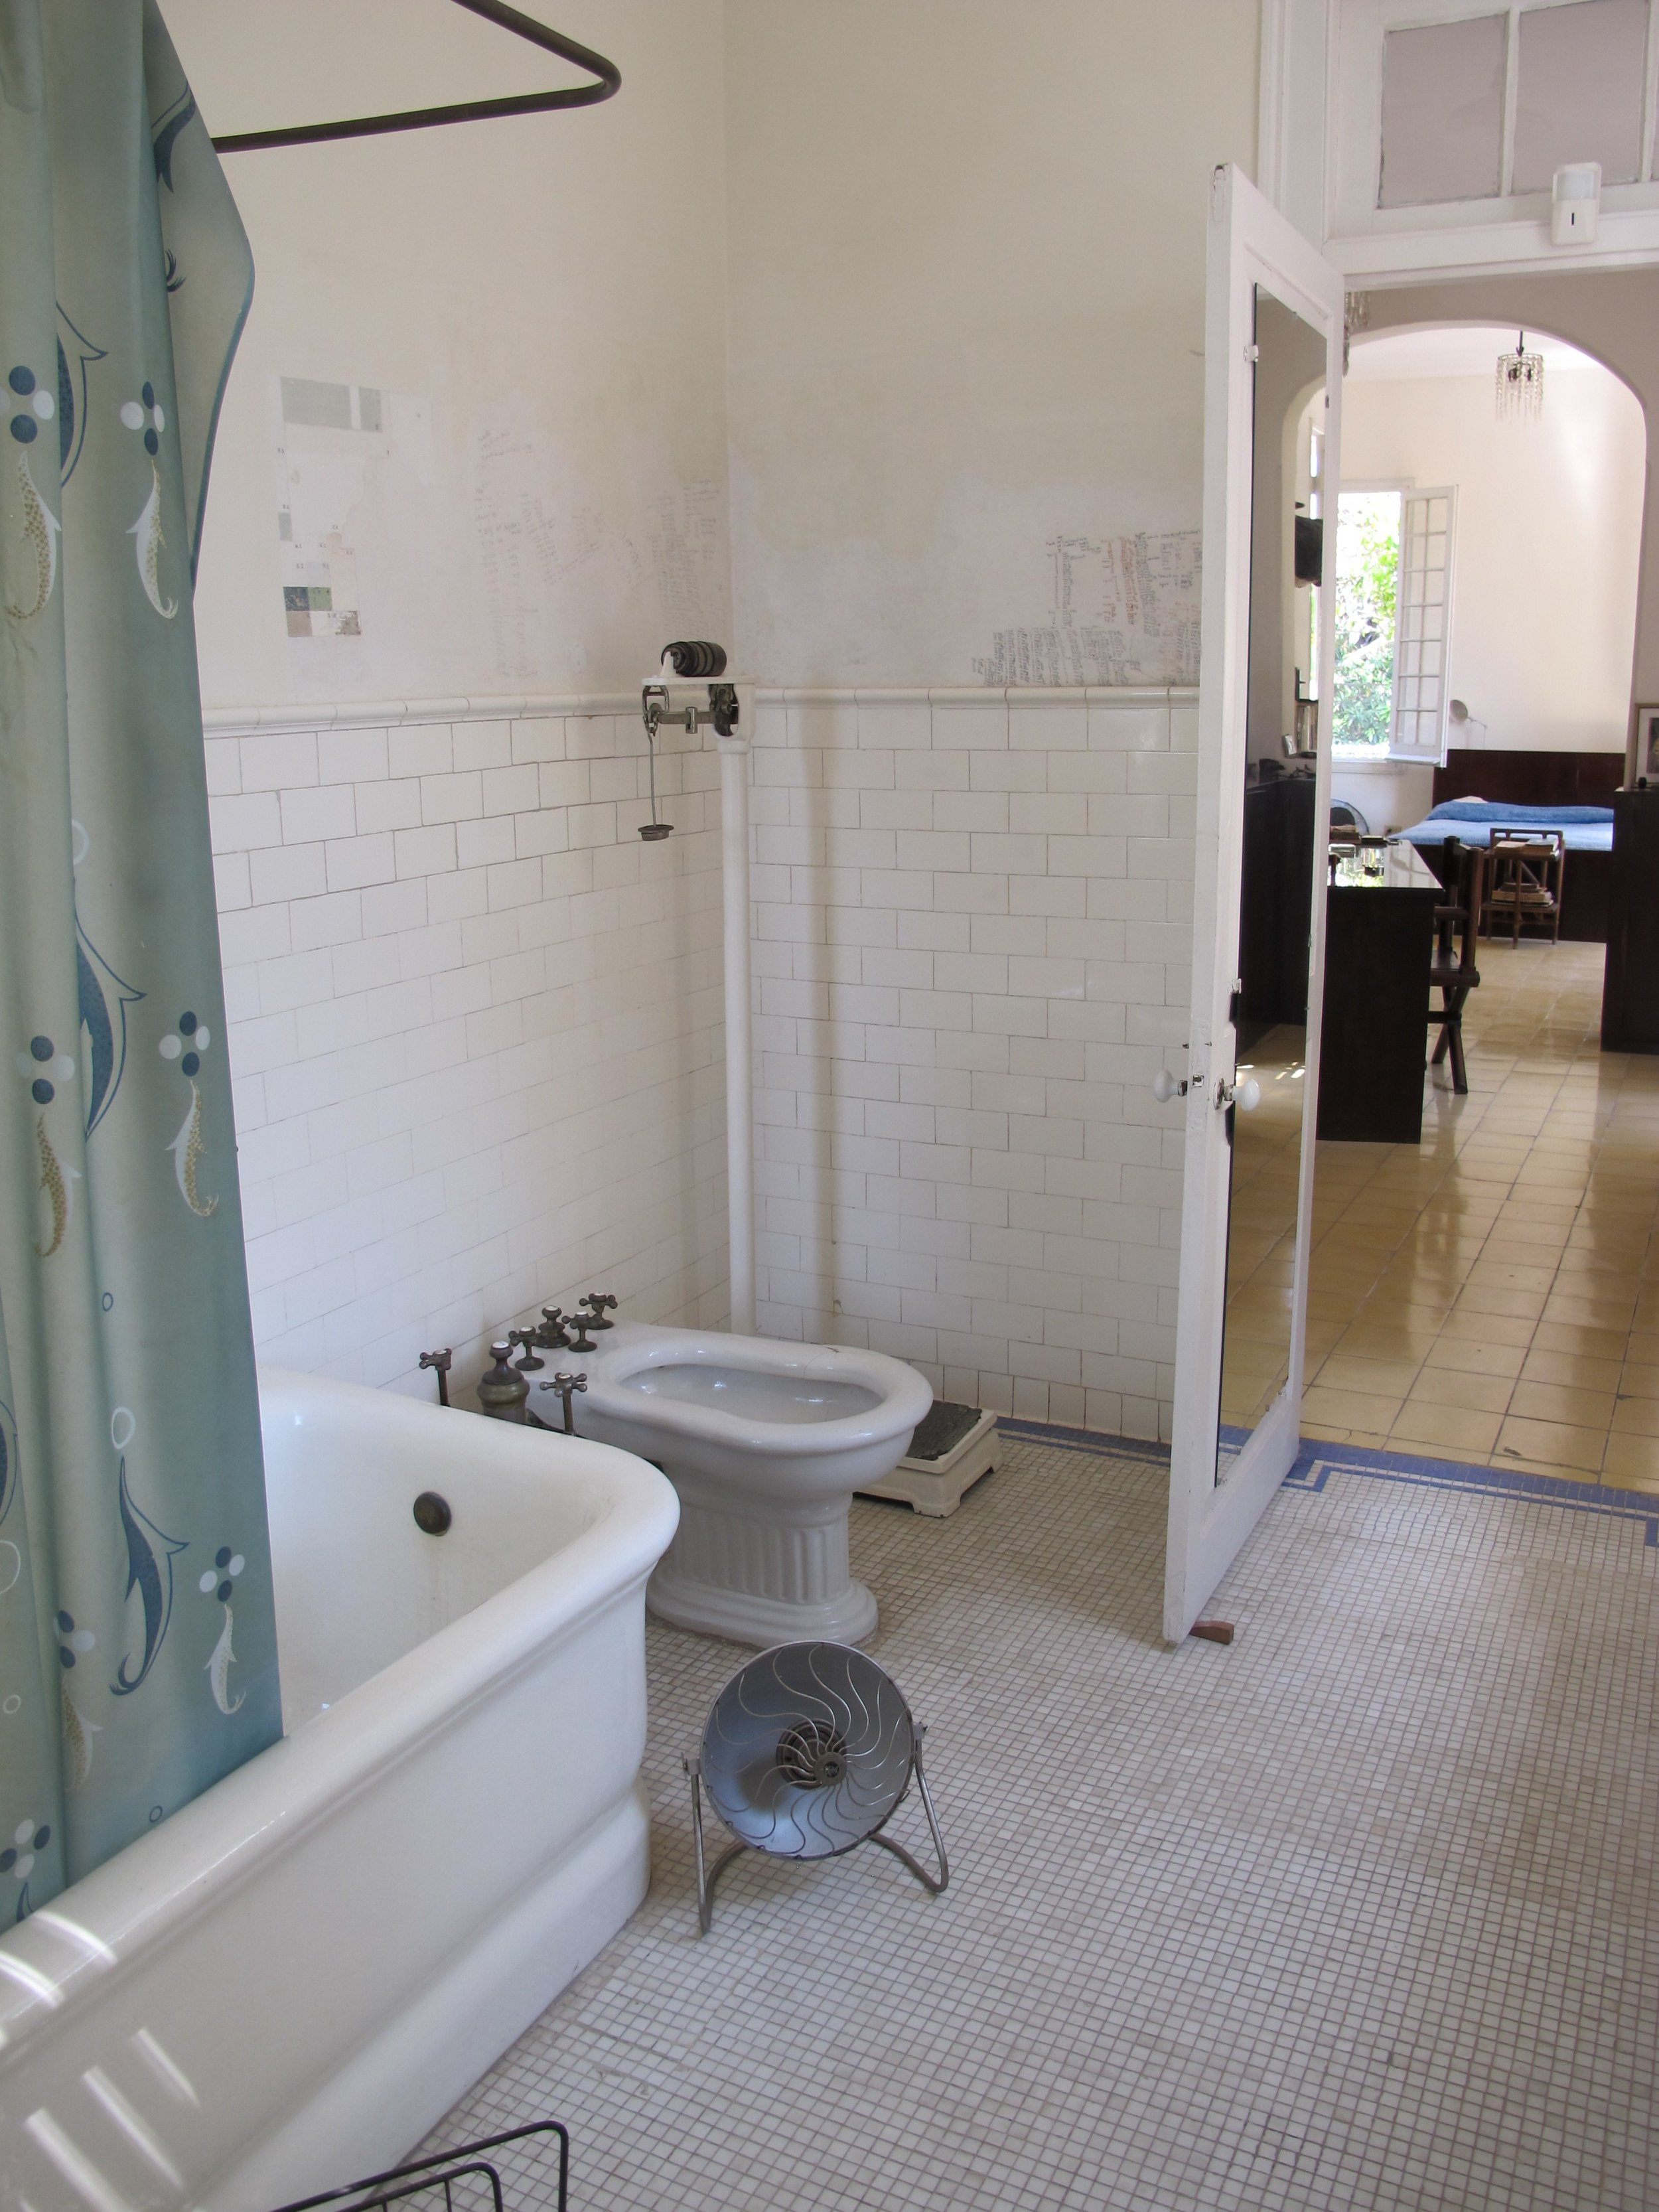 Bathroom, where he obsessively logged his weight daily